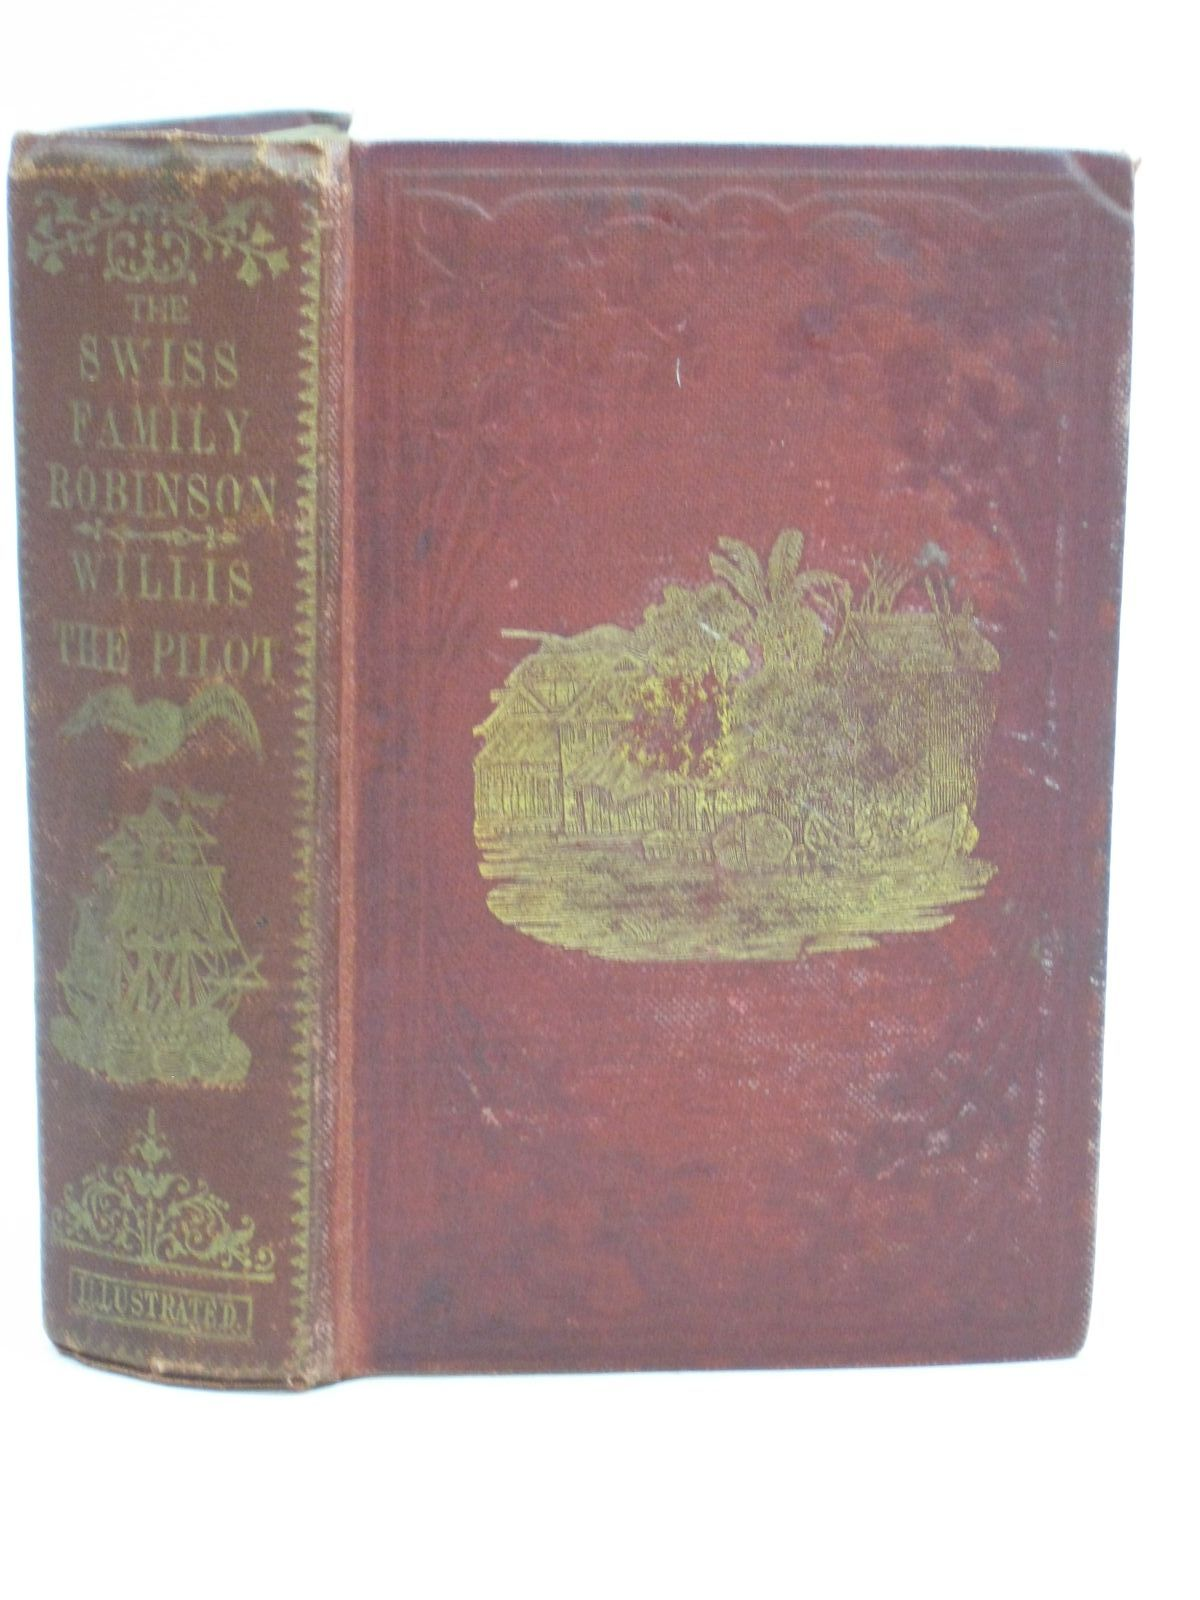 Photo of THE SWISS FAMILY ROBINSON & WILLIS THE PILOT written by Wyss, Johann published by Darton And Hodge (STOCK CODE: 1404878)  for sale by Stella & Rose's Books